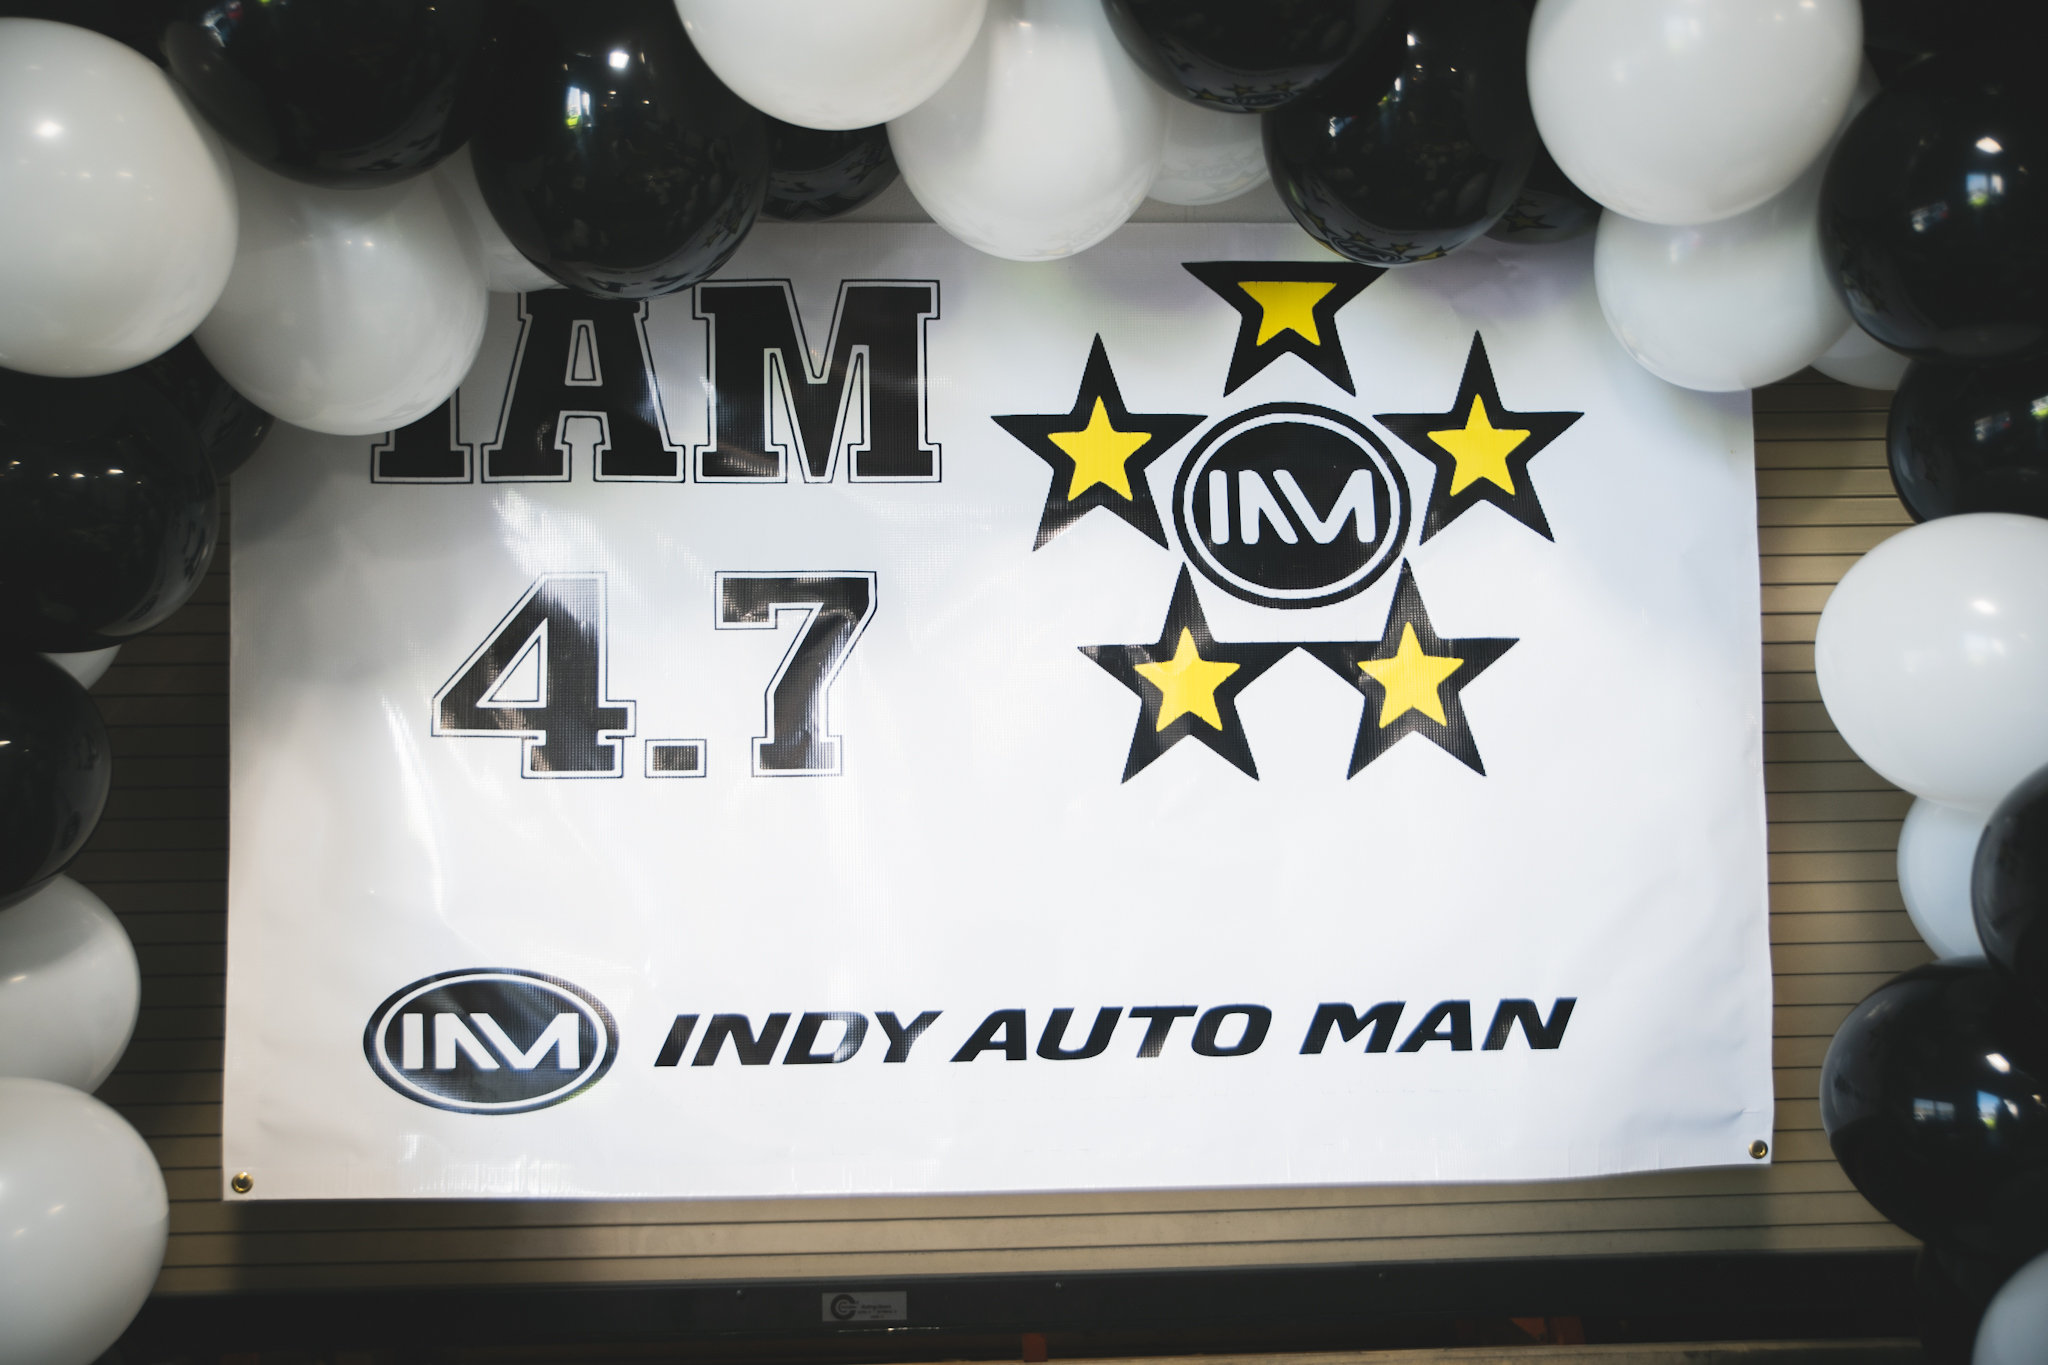 Indy Auto Man 4.7 Google Review Party - first image